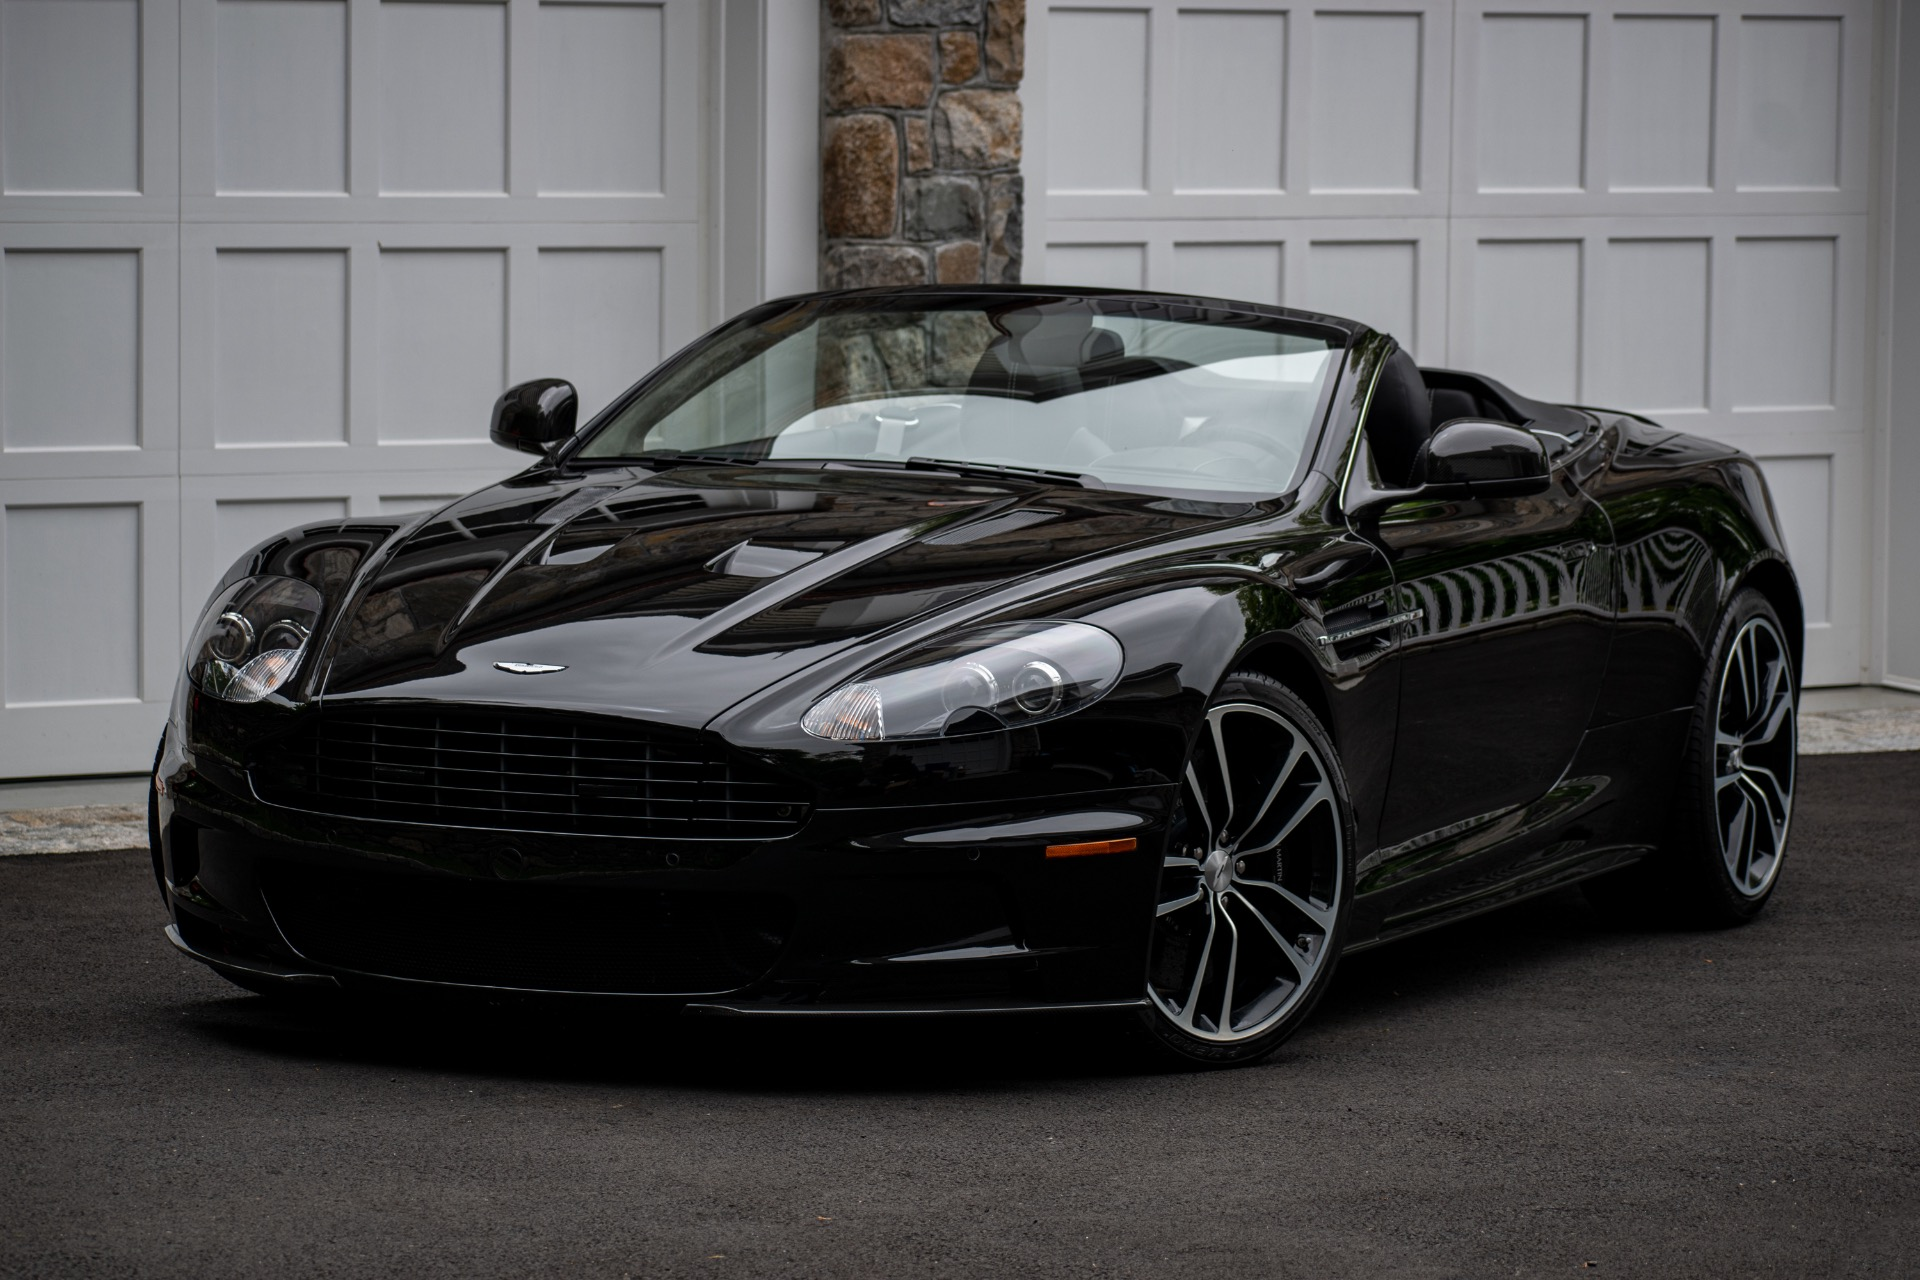 2012 Aston Martin DBS Carbon Black Edition